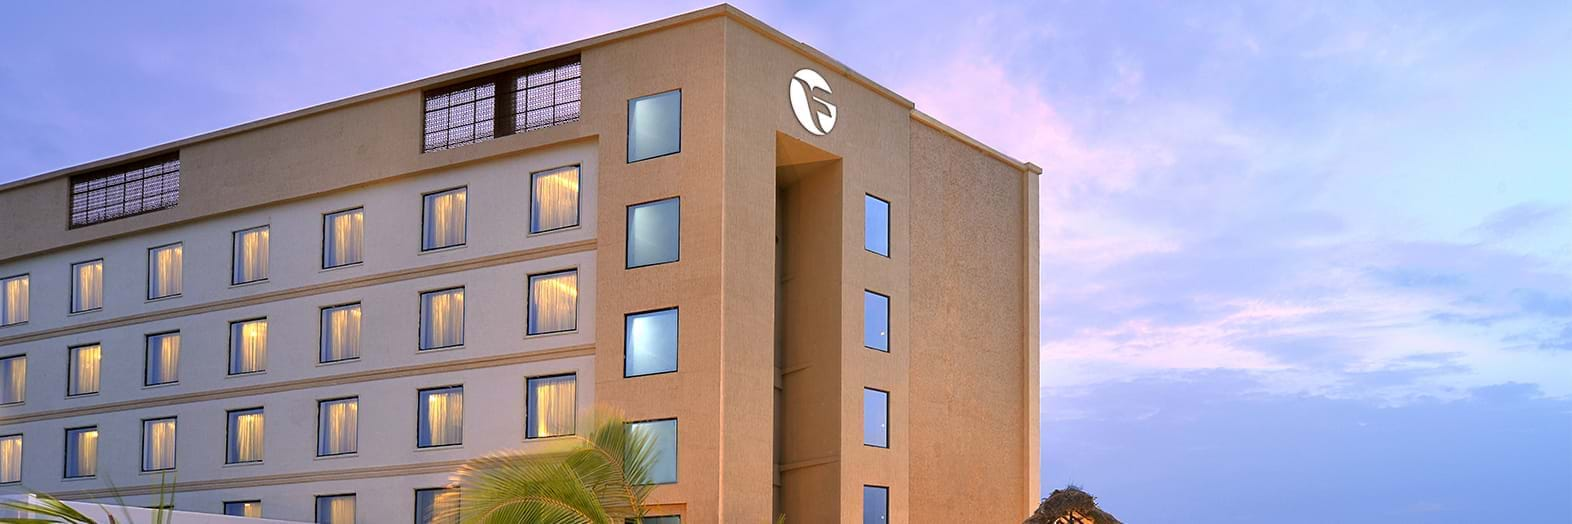 Hotels in Tirupati - Fortune Select Grand Ridge